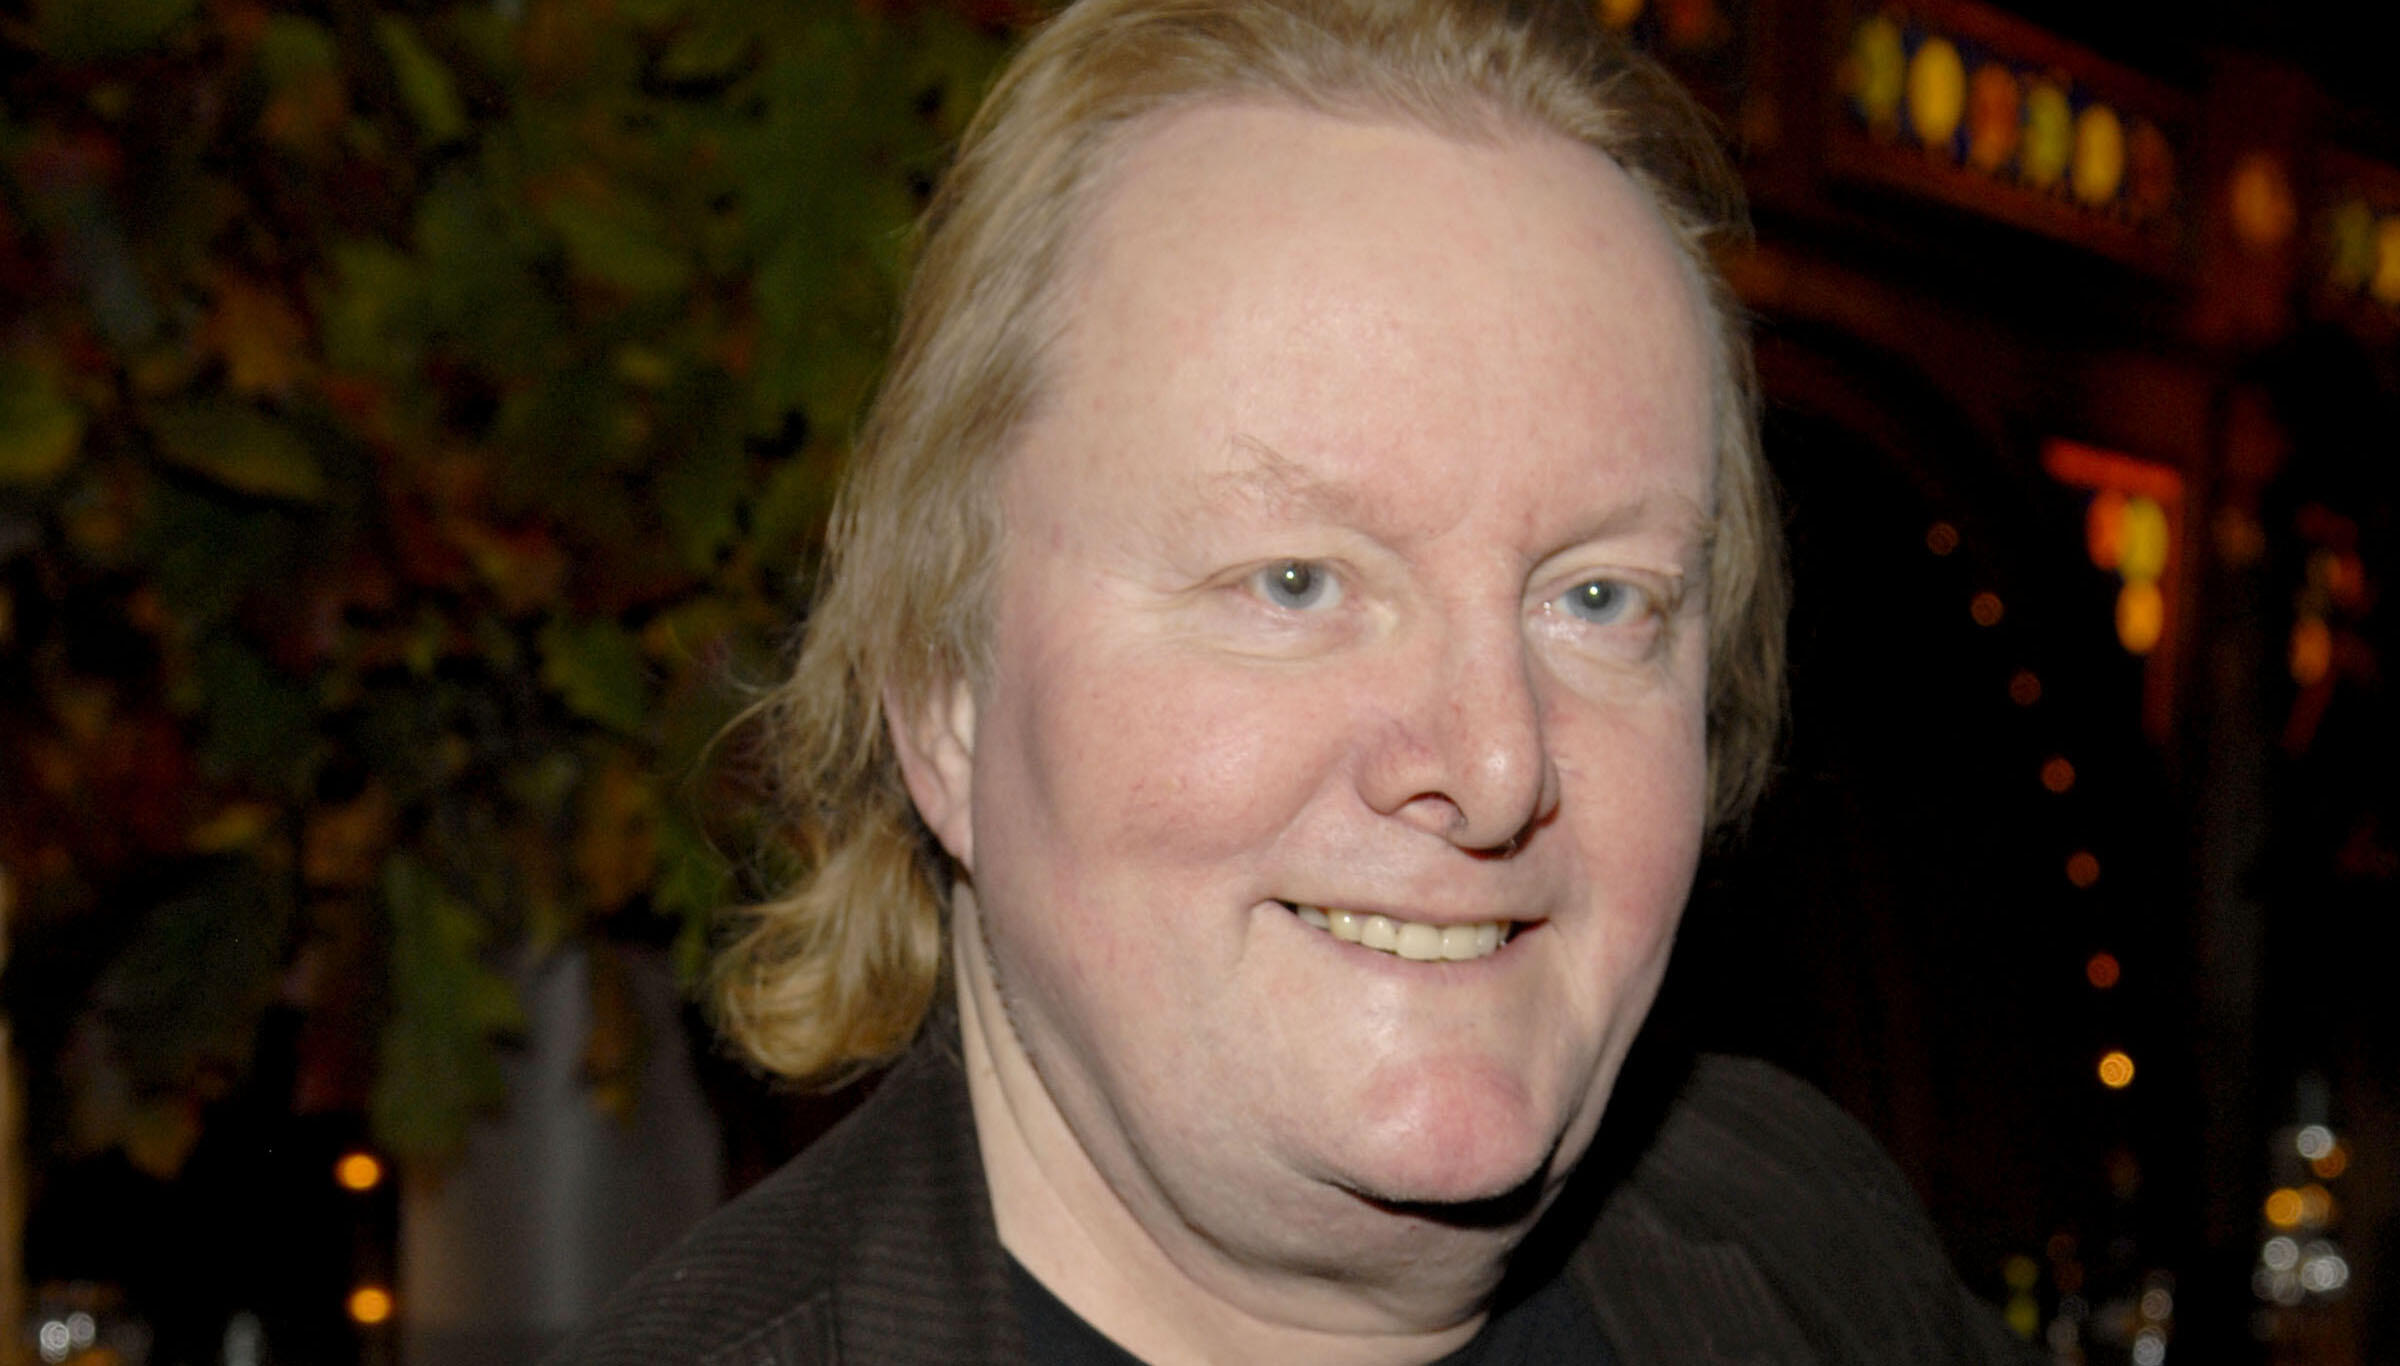 'This Is Spinal Tap' Actor Tony Hendra Dies At 79